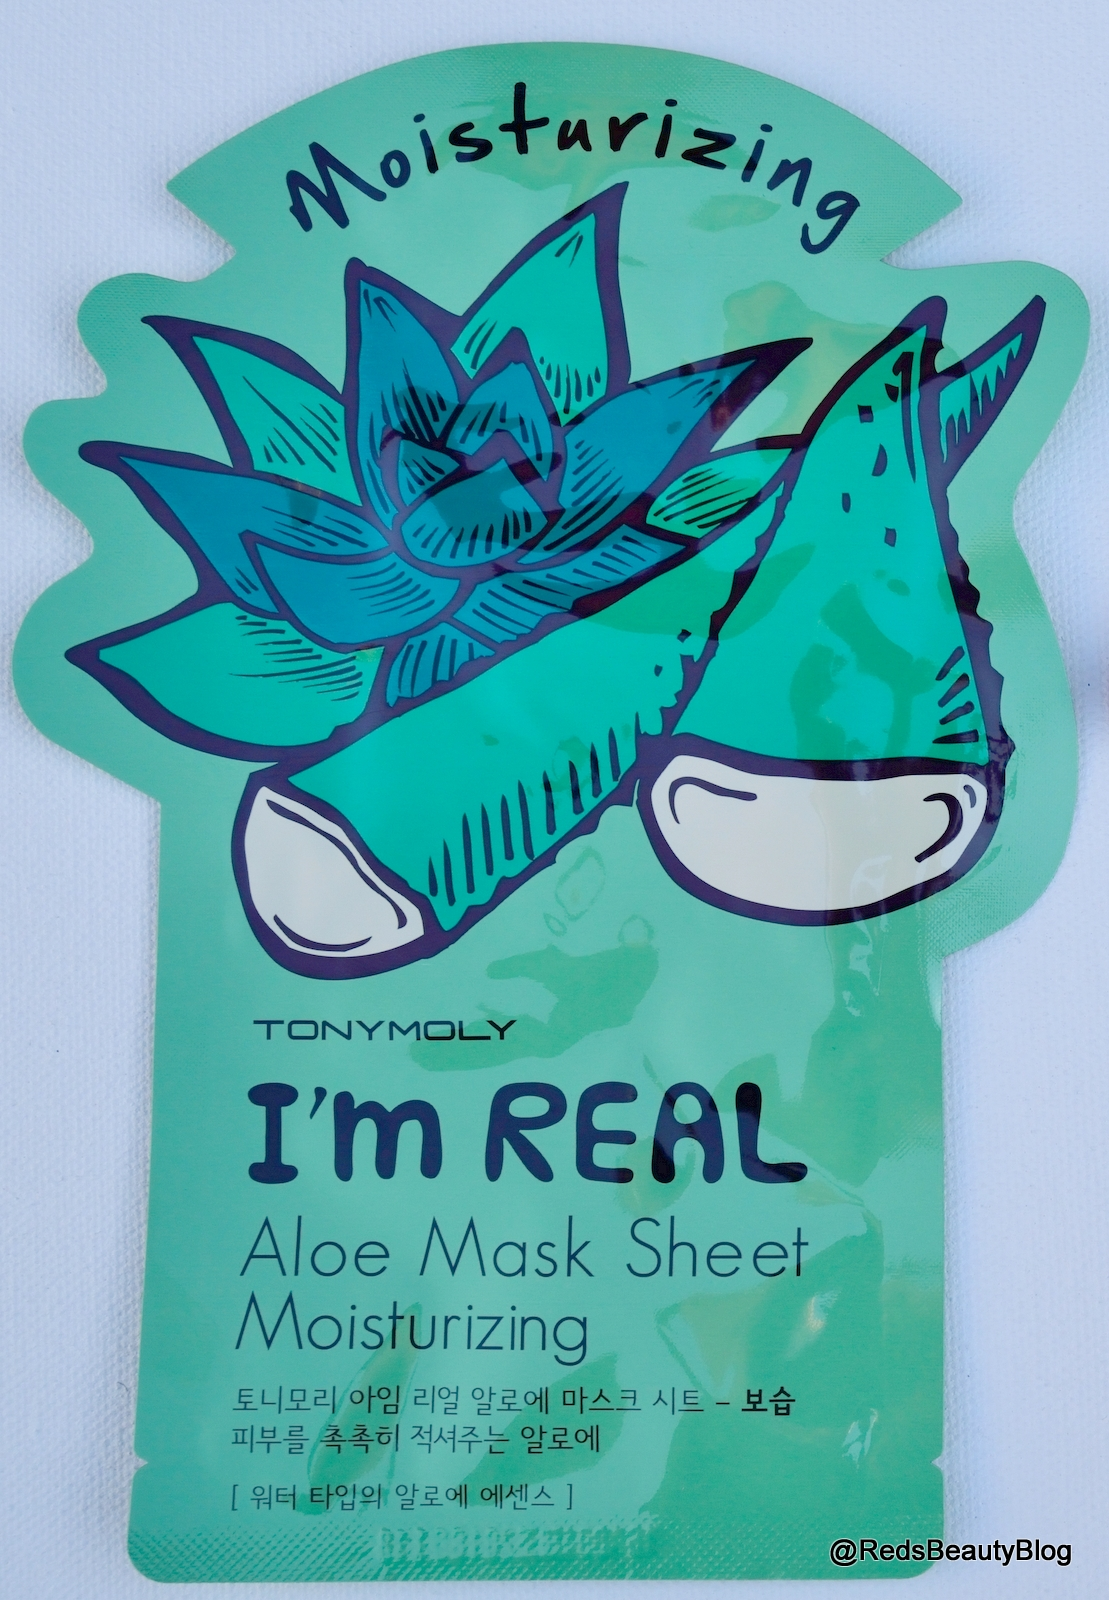 a picture of Tony Moly Im Real Aloe Sheet Mask